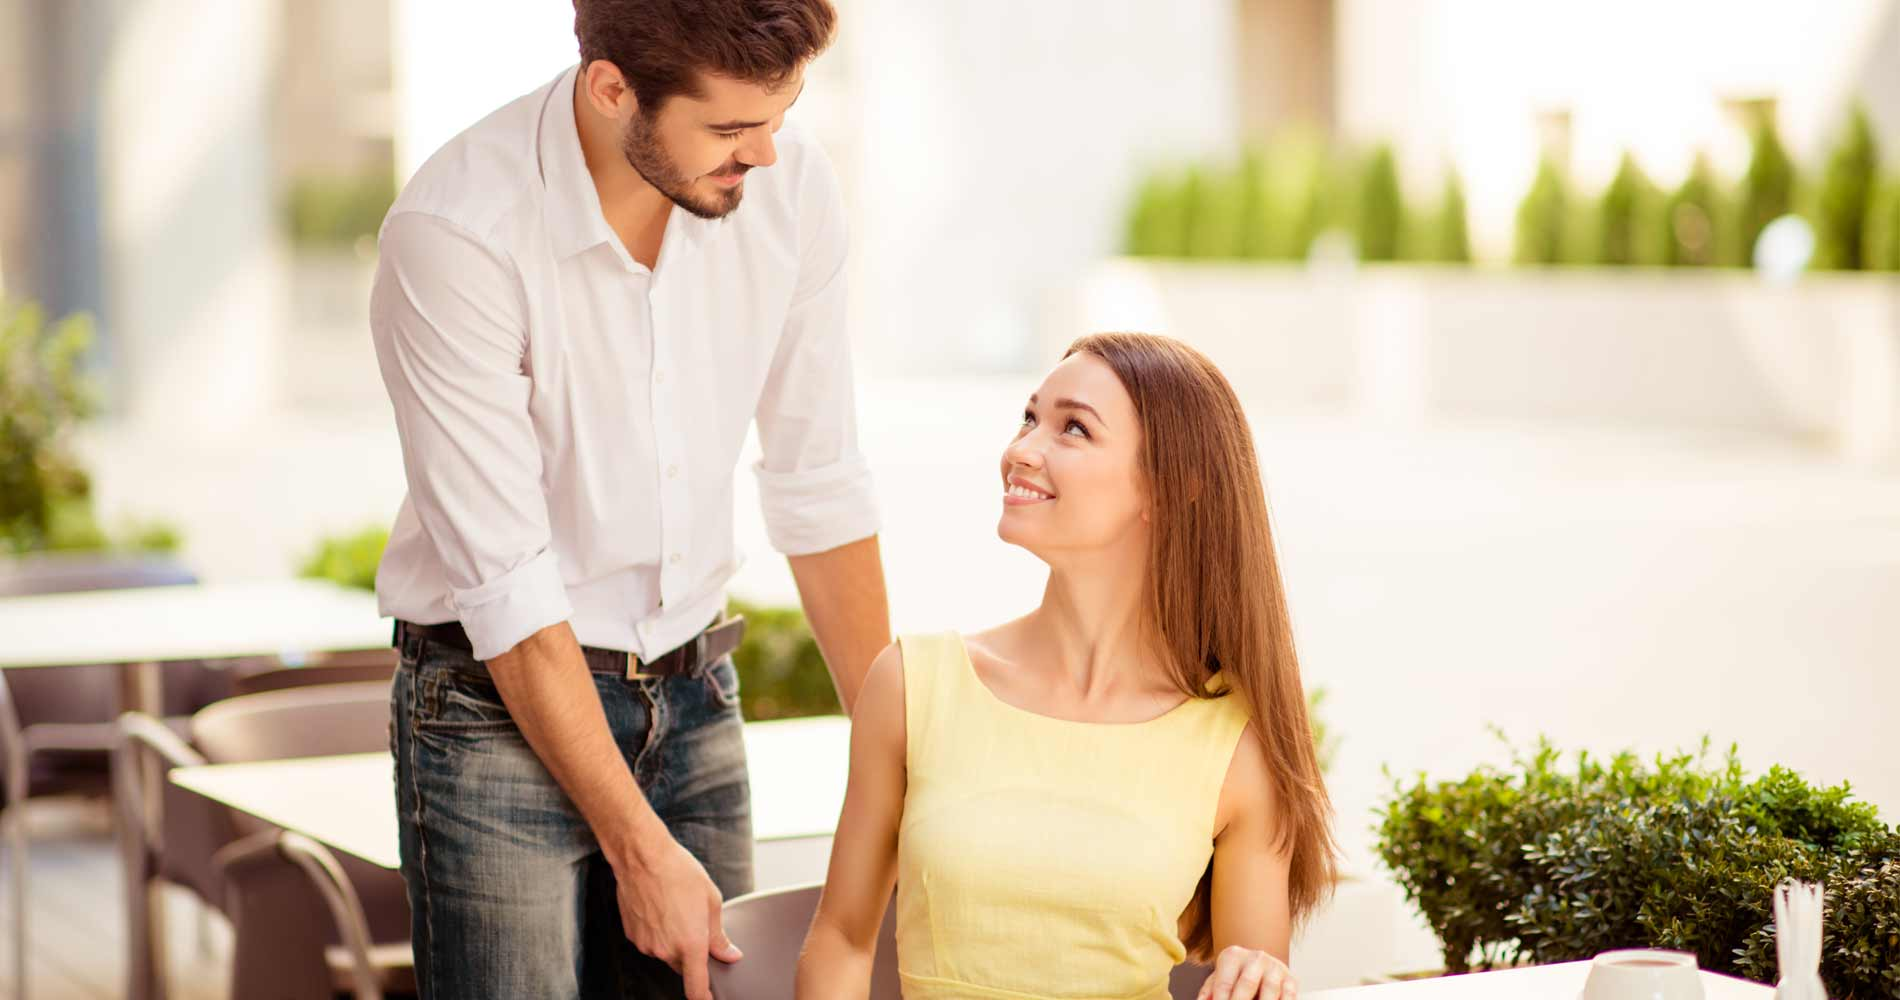 The Code of Modern Chivalry – How to Be Chivalrous Today?